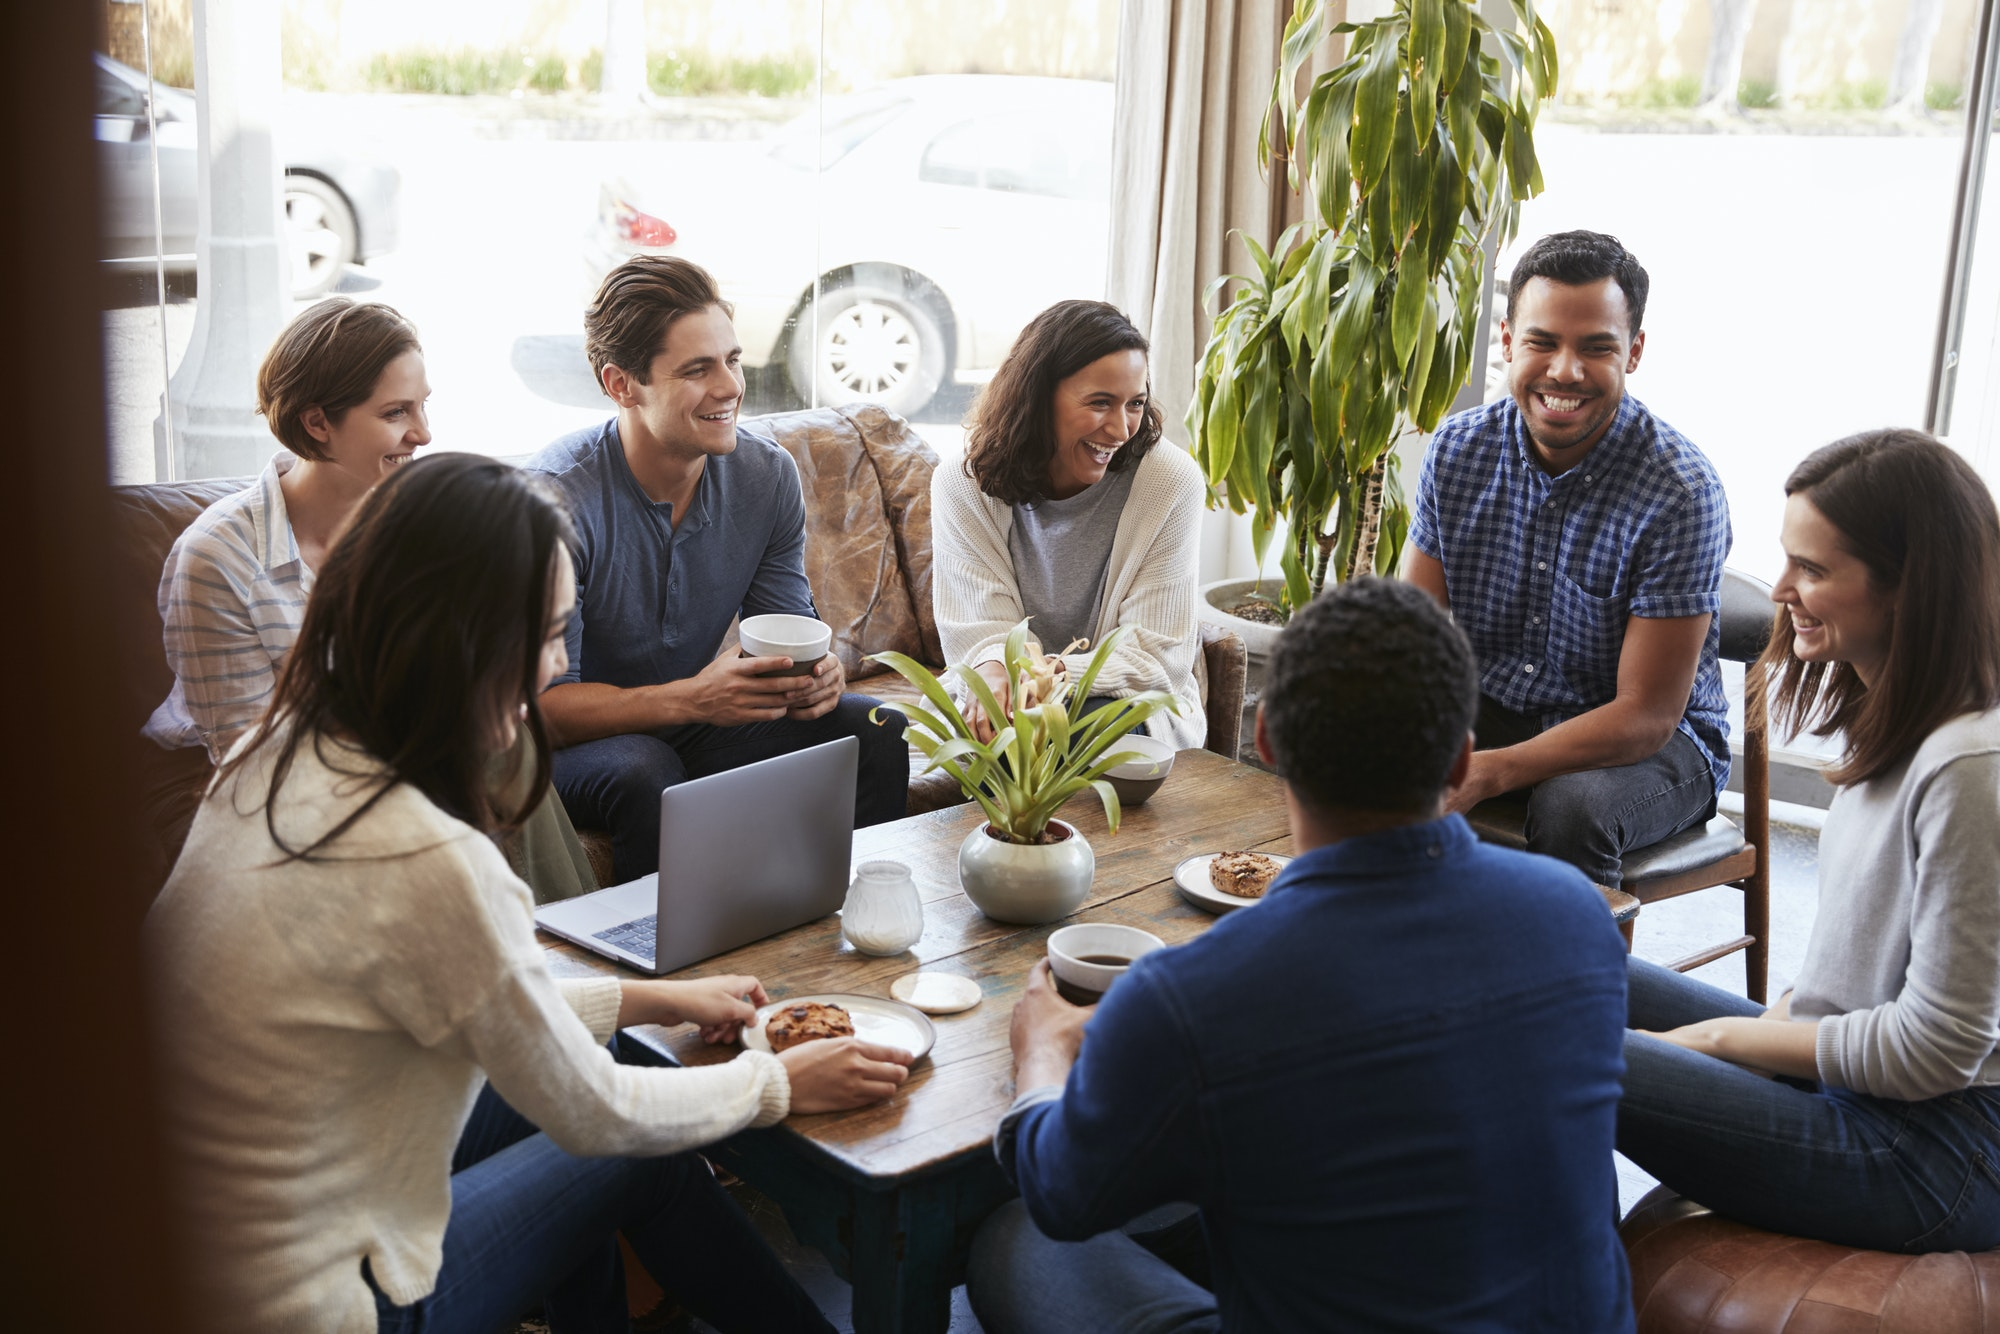 Group of friends having coffee together at a coffee shop